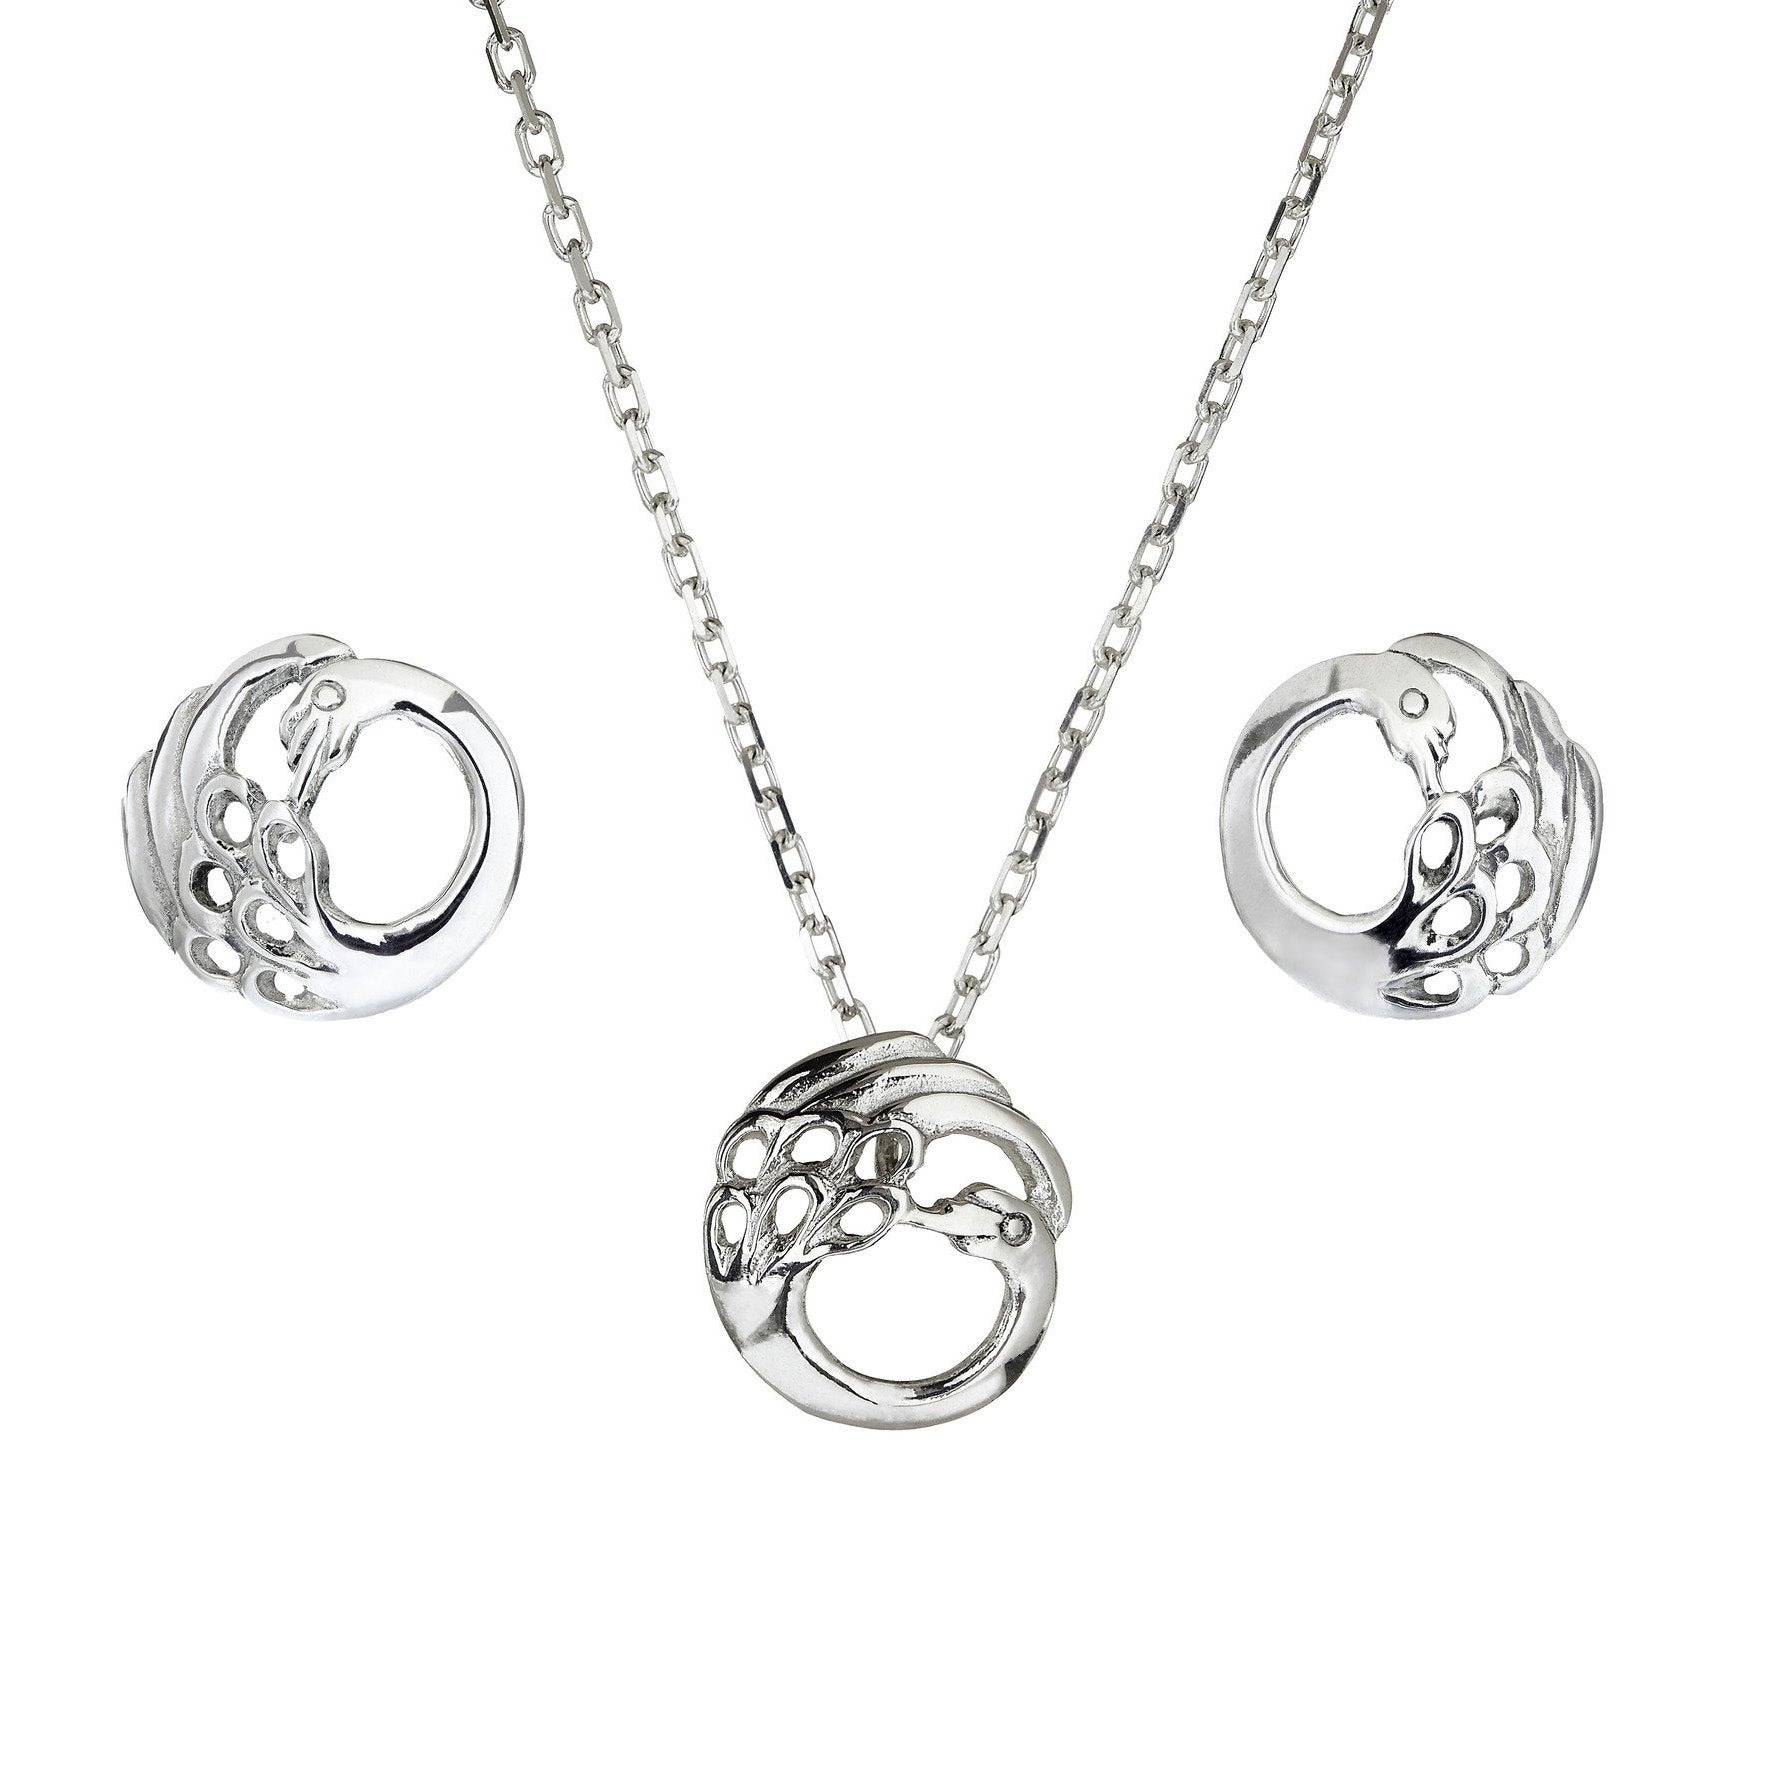 Swan Stud Earrings, Necklace & Pendant. A sterling silver  Irish Jewellery set.